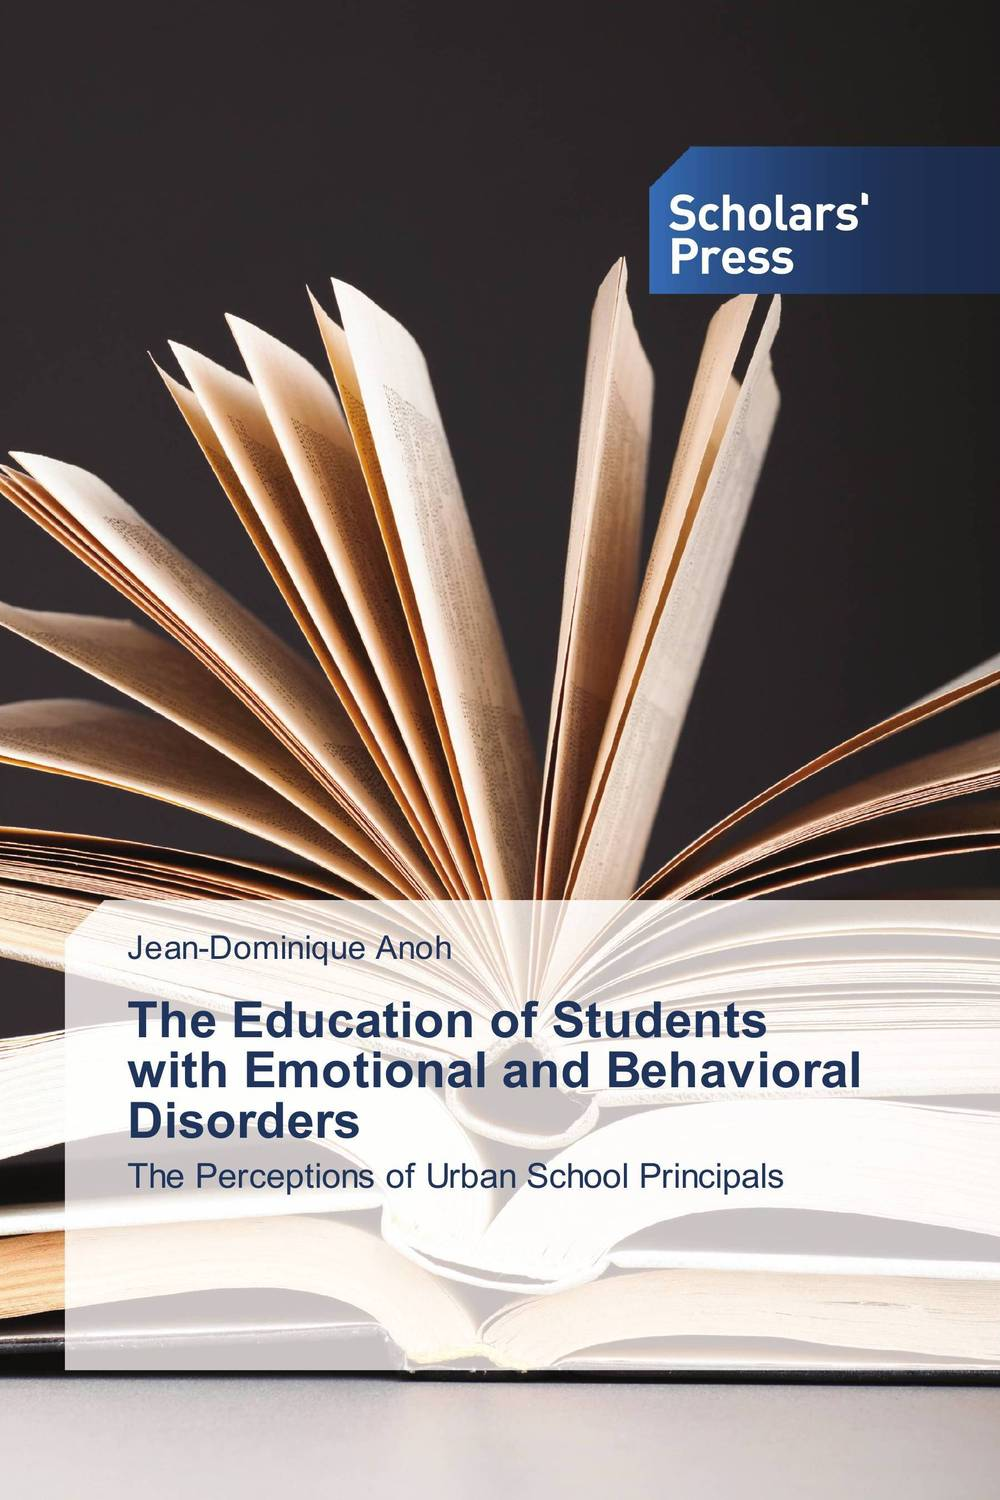 The Education of Students with Emotional and Behavioral Disorders role of school leadership in promoting moral integrity among students